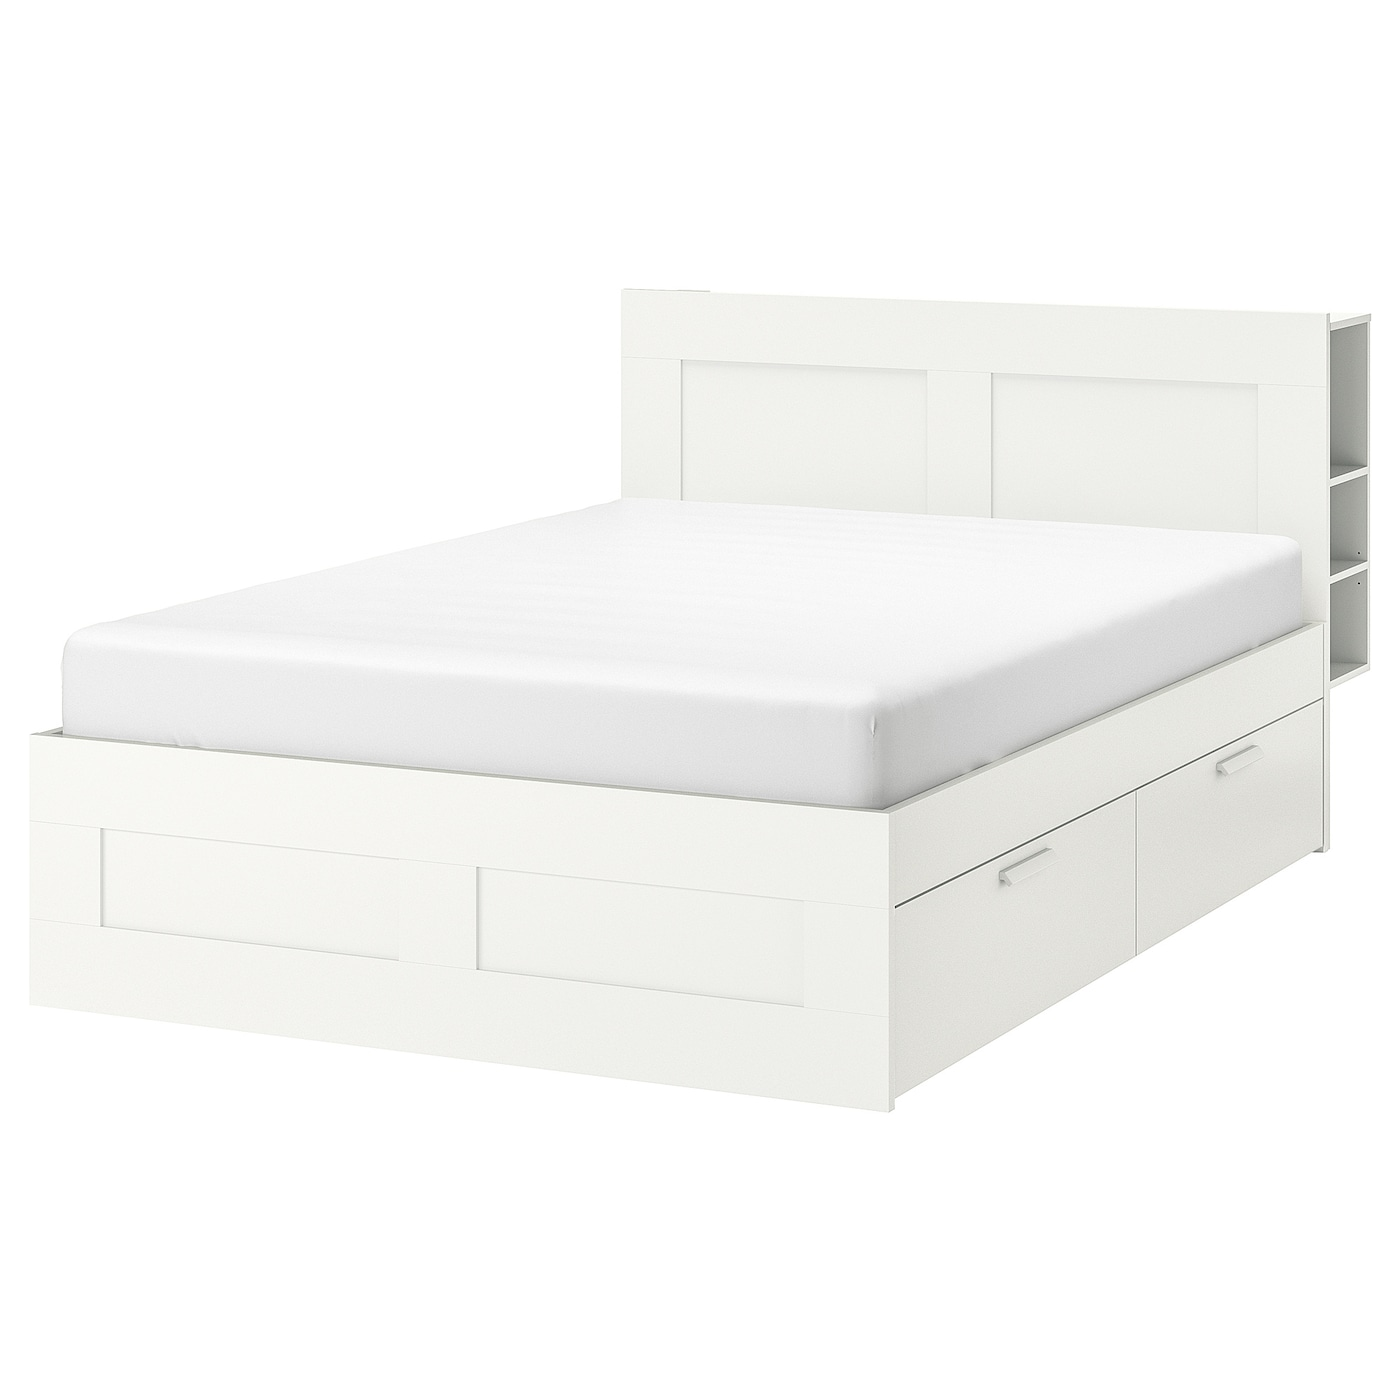 Image of: Brimnes Bed Frame W Storage And Headboard White Luroy Ikea